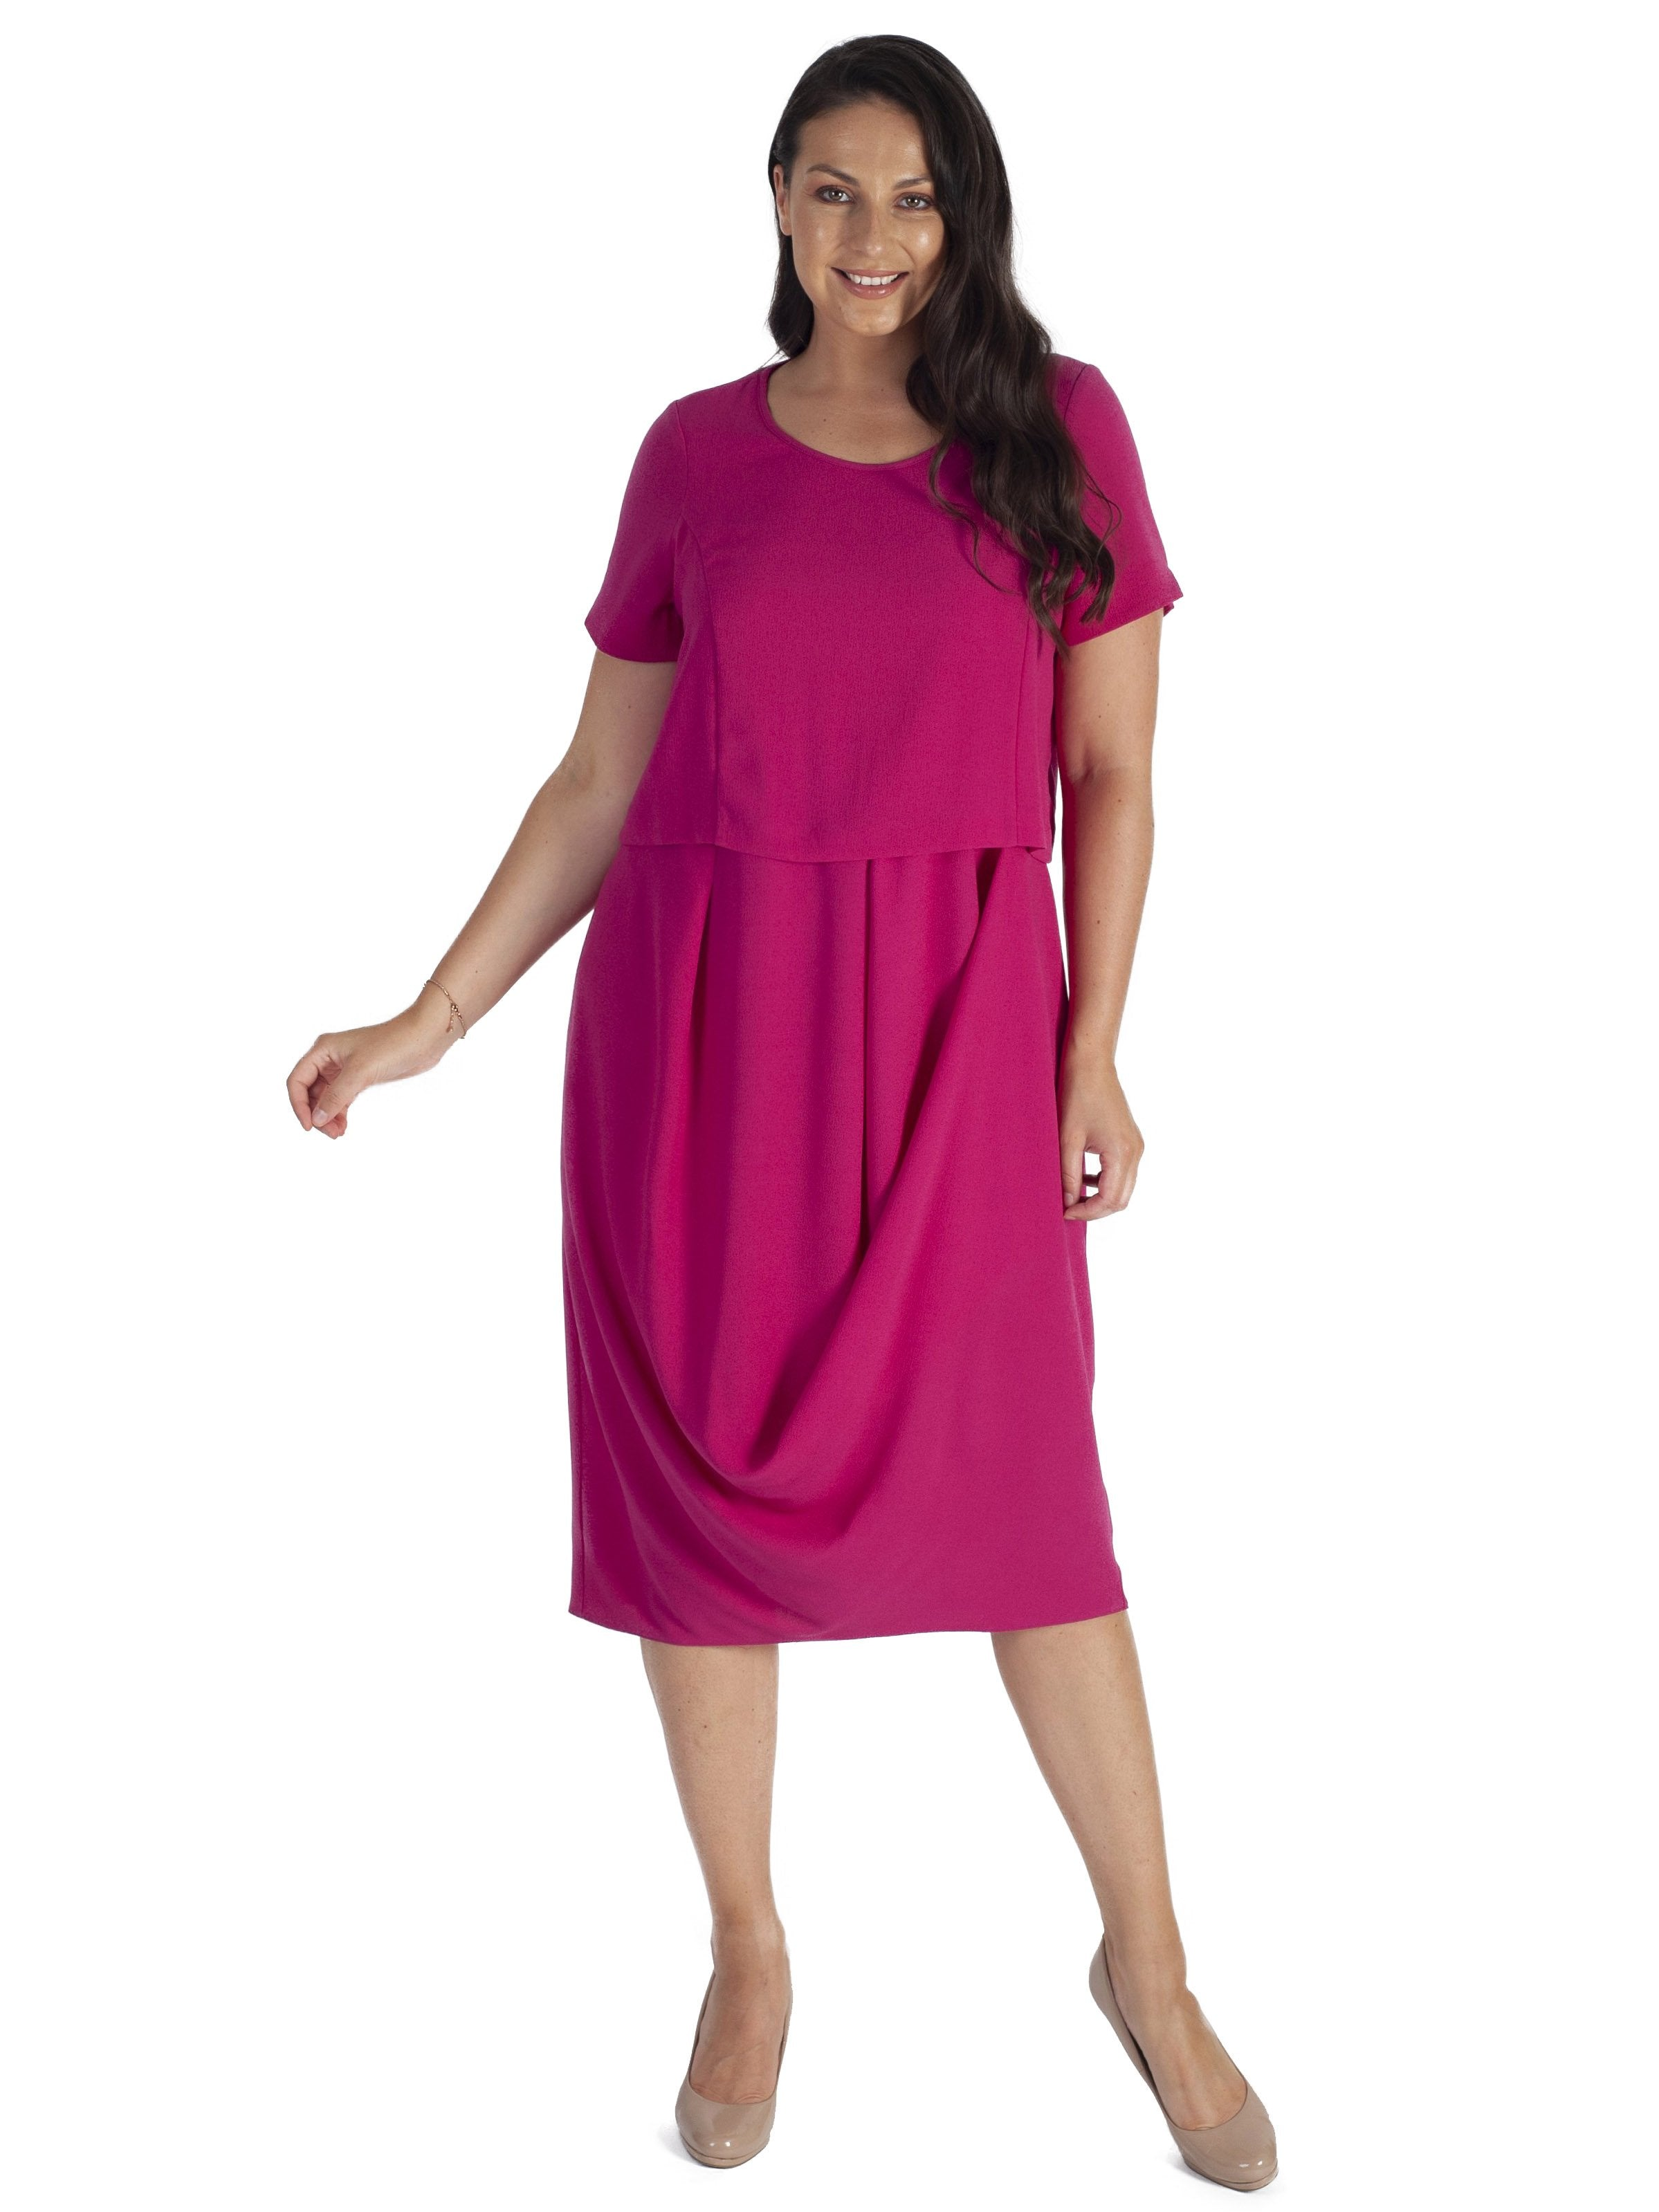 Lipstick Layered Drape Crepe Dress